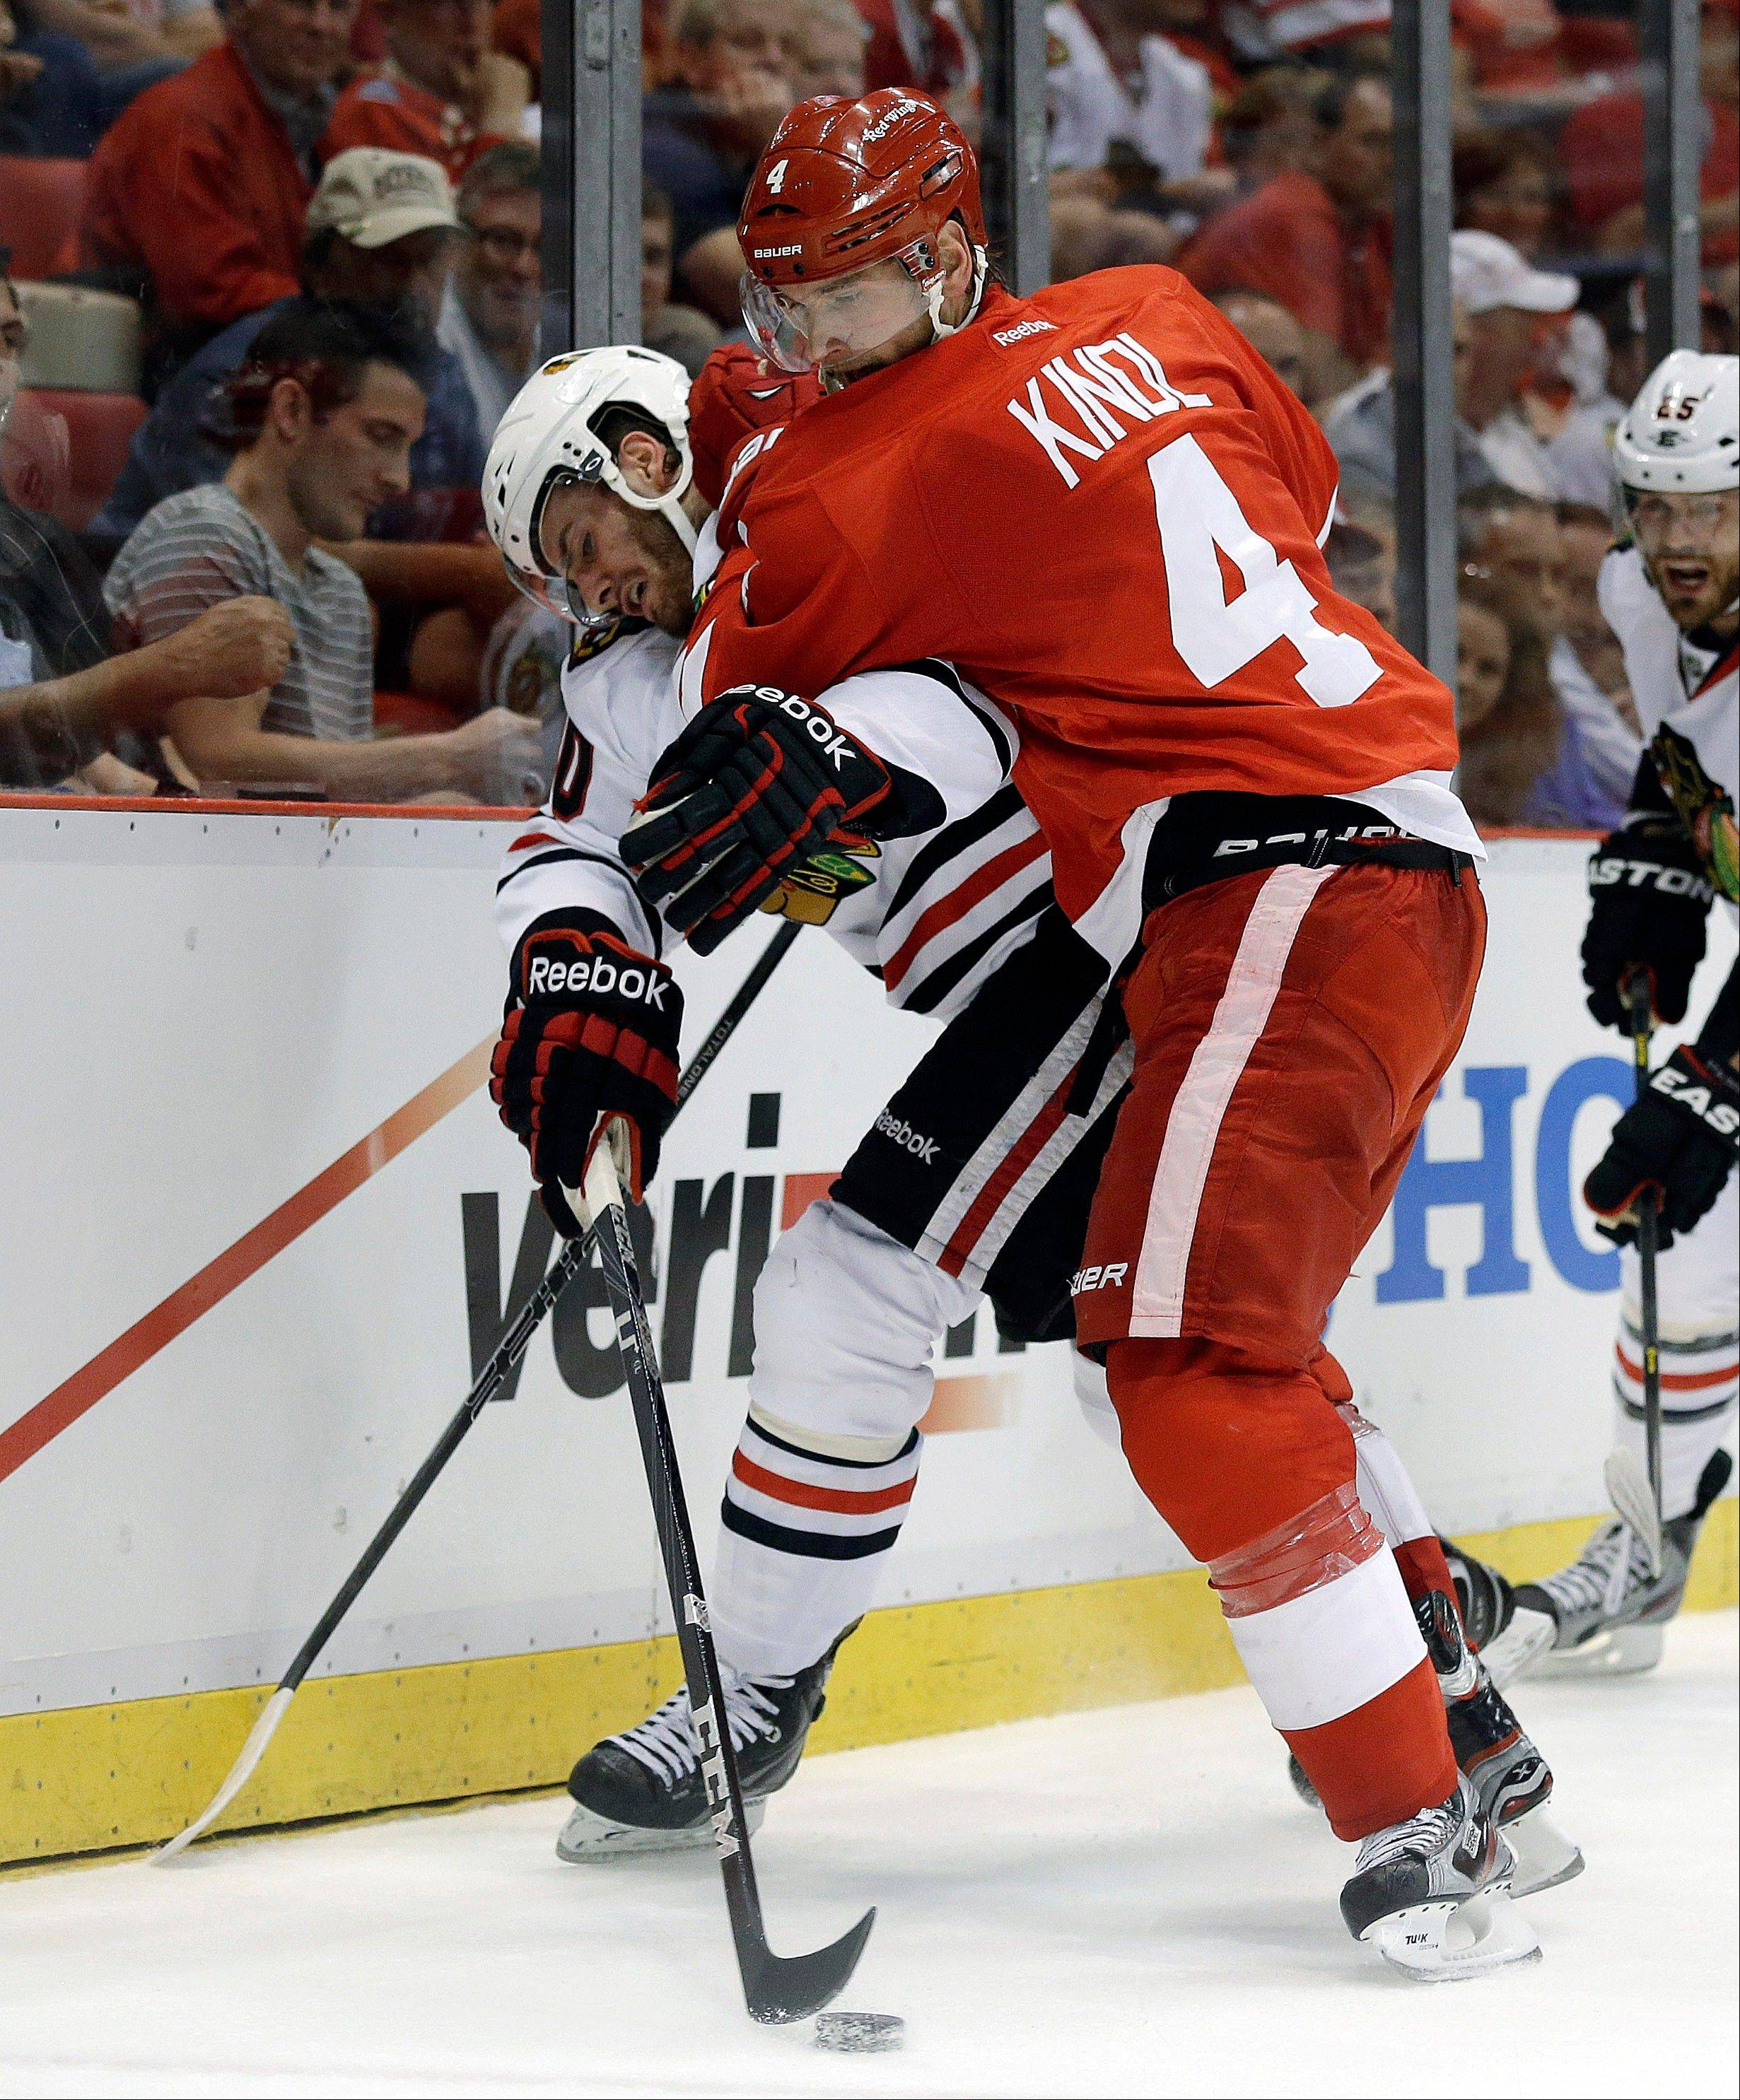 Red Wings defenseman Jakub Kindl checks the Blackhawks' Brandon Saad during Monday's Game 3 at Detroit.